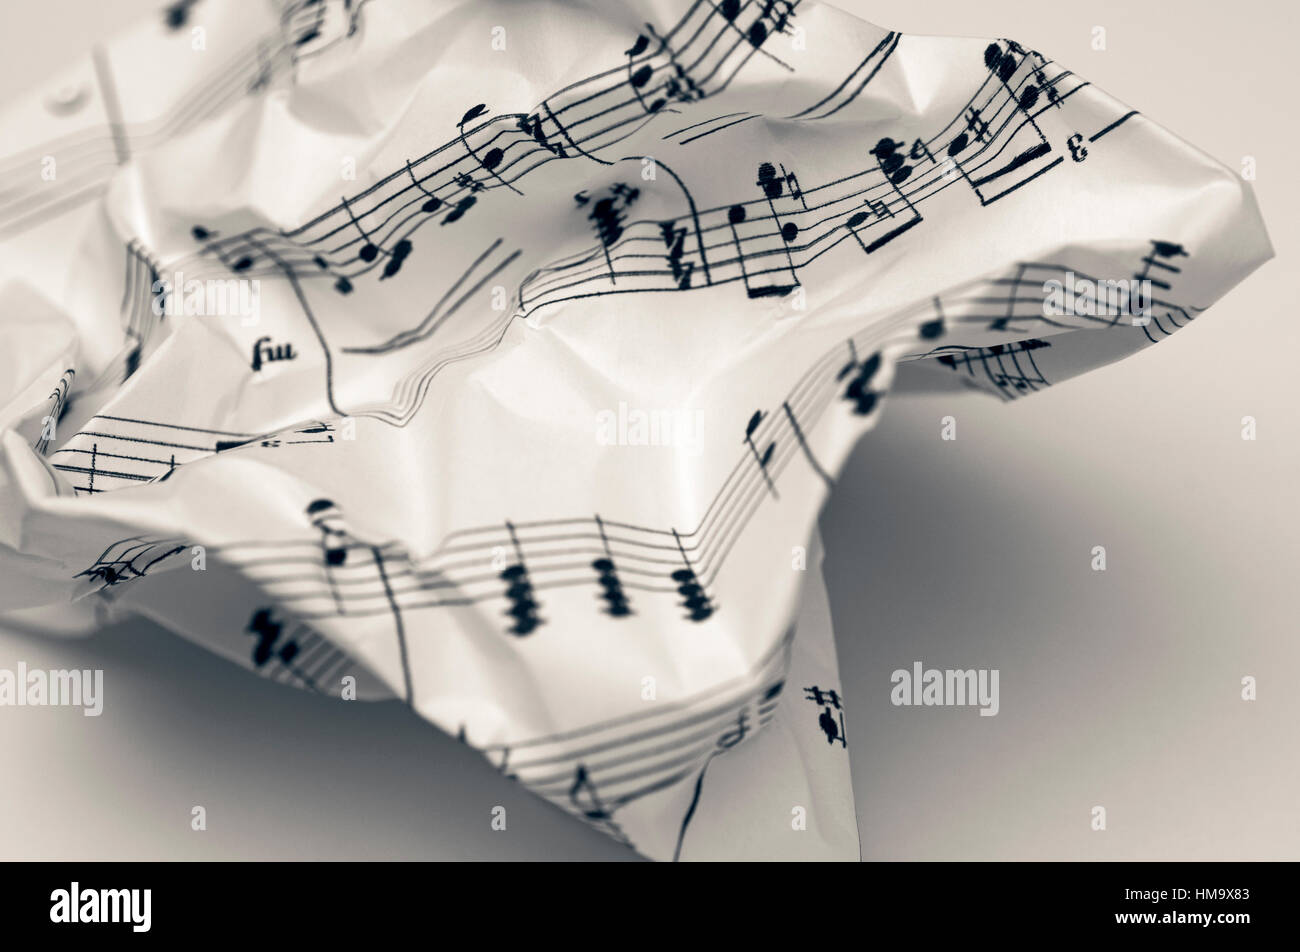 crumpled music sheet - Stock Image